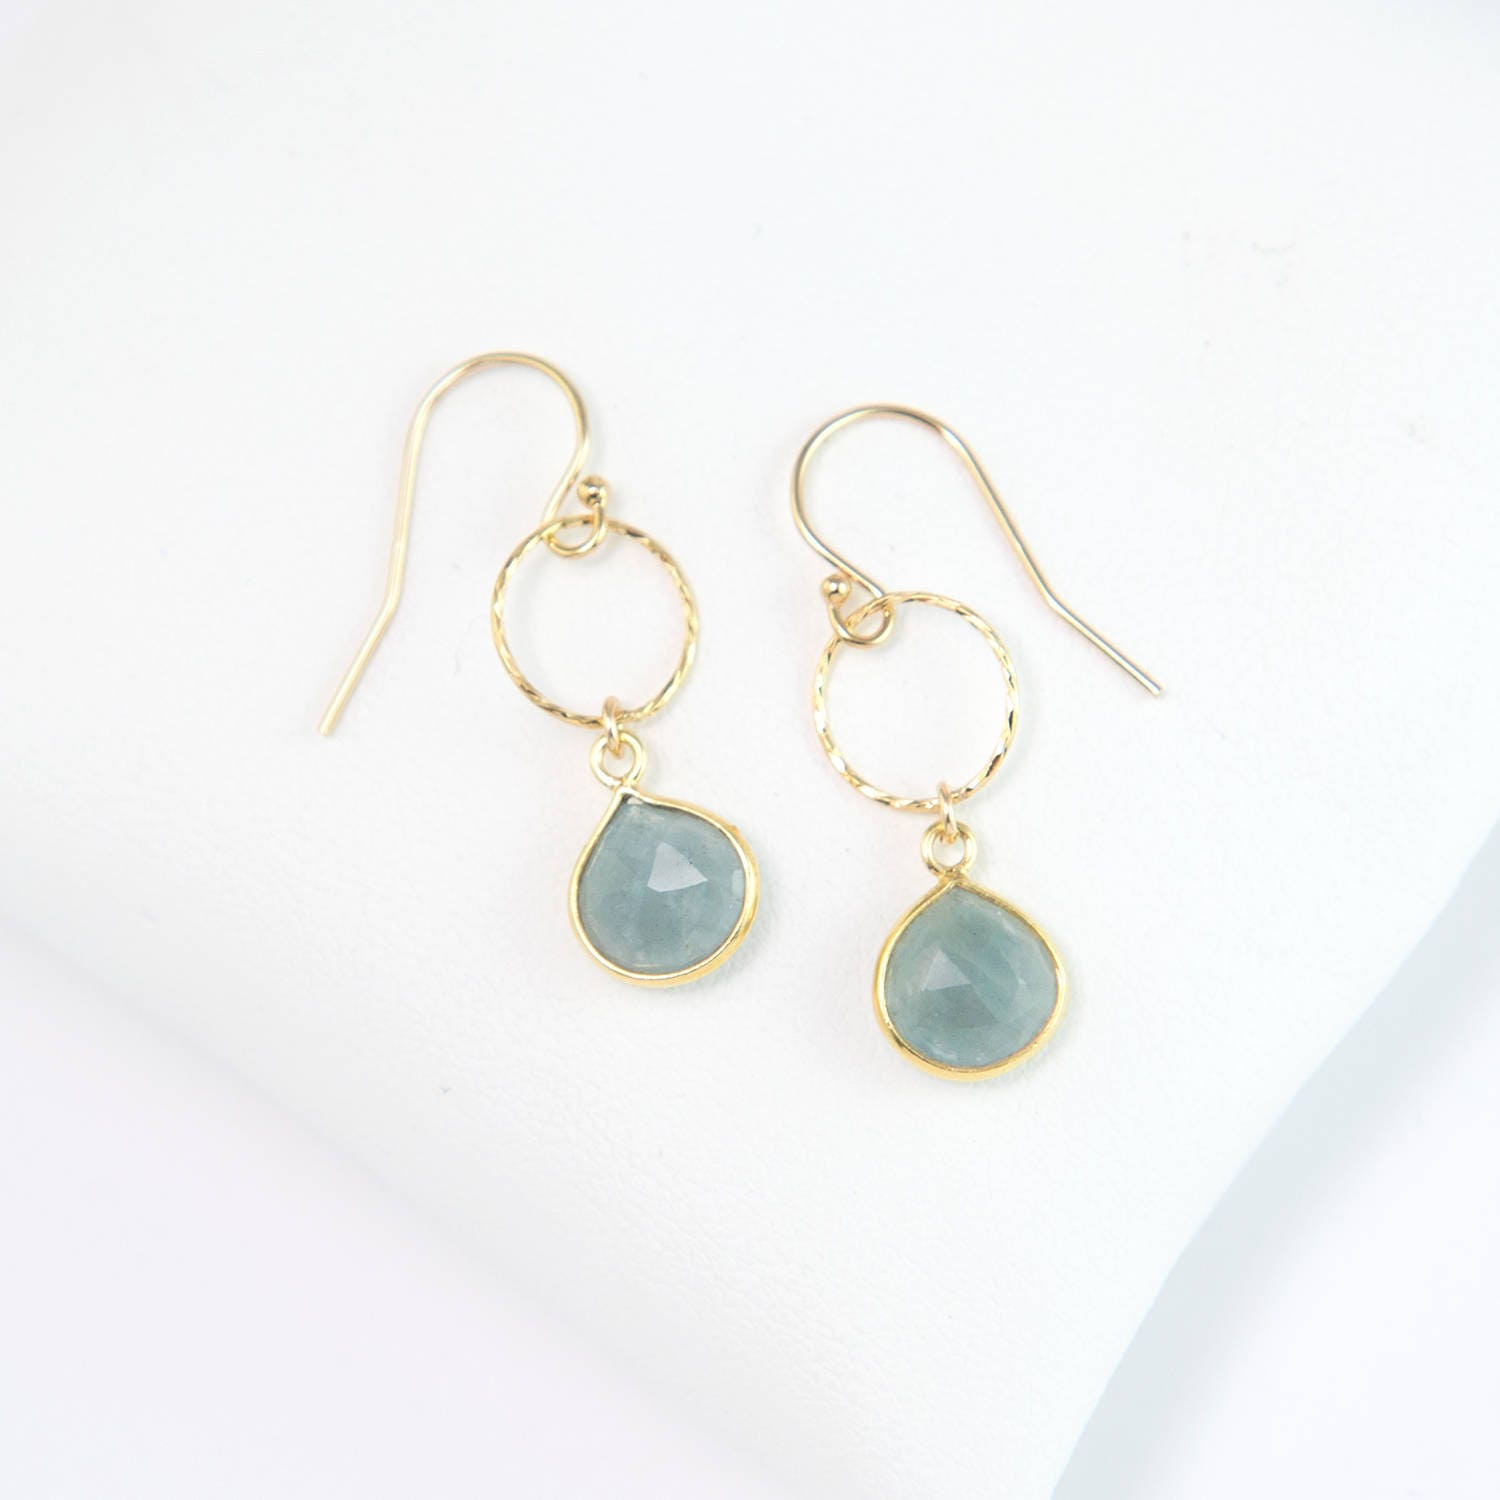 on post mar product march ball in genuine birthstone aquamarine earrings hypoallergenic table